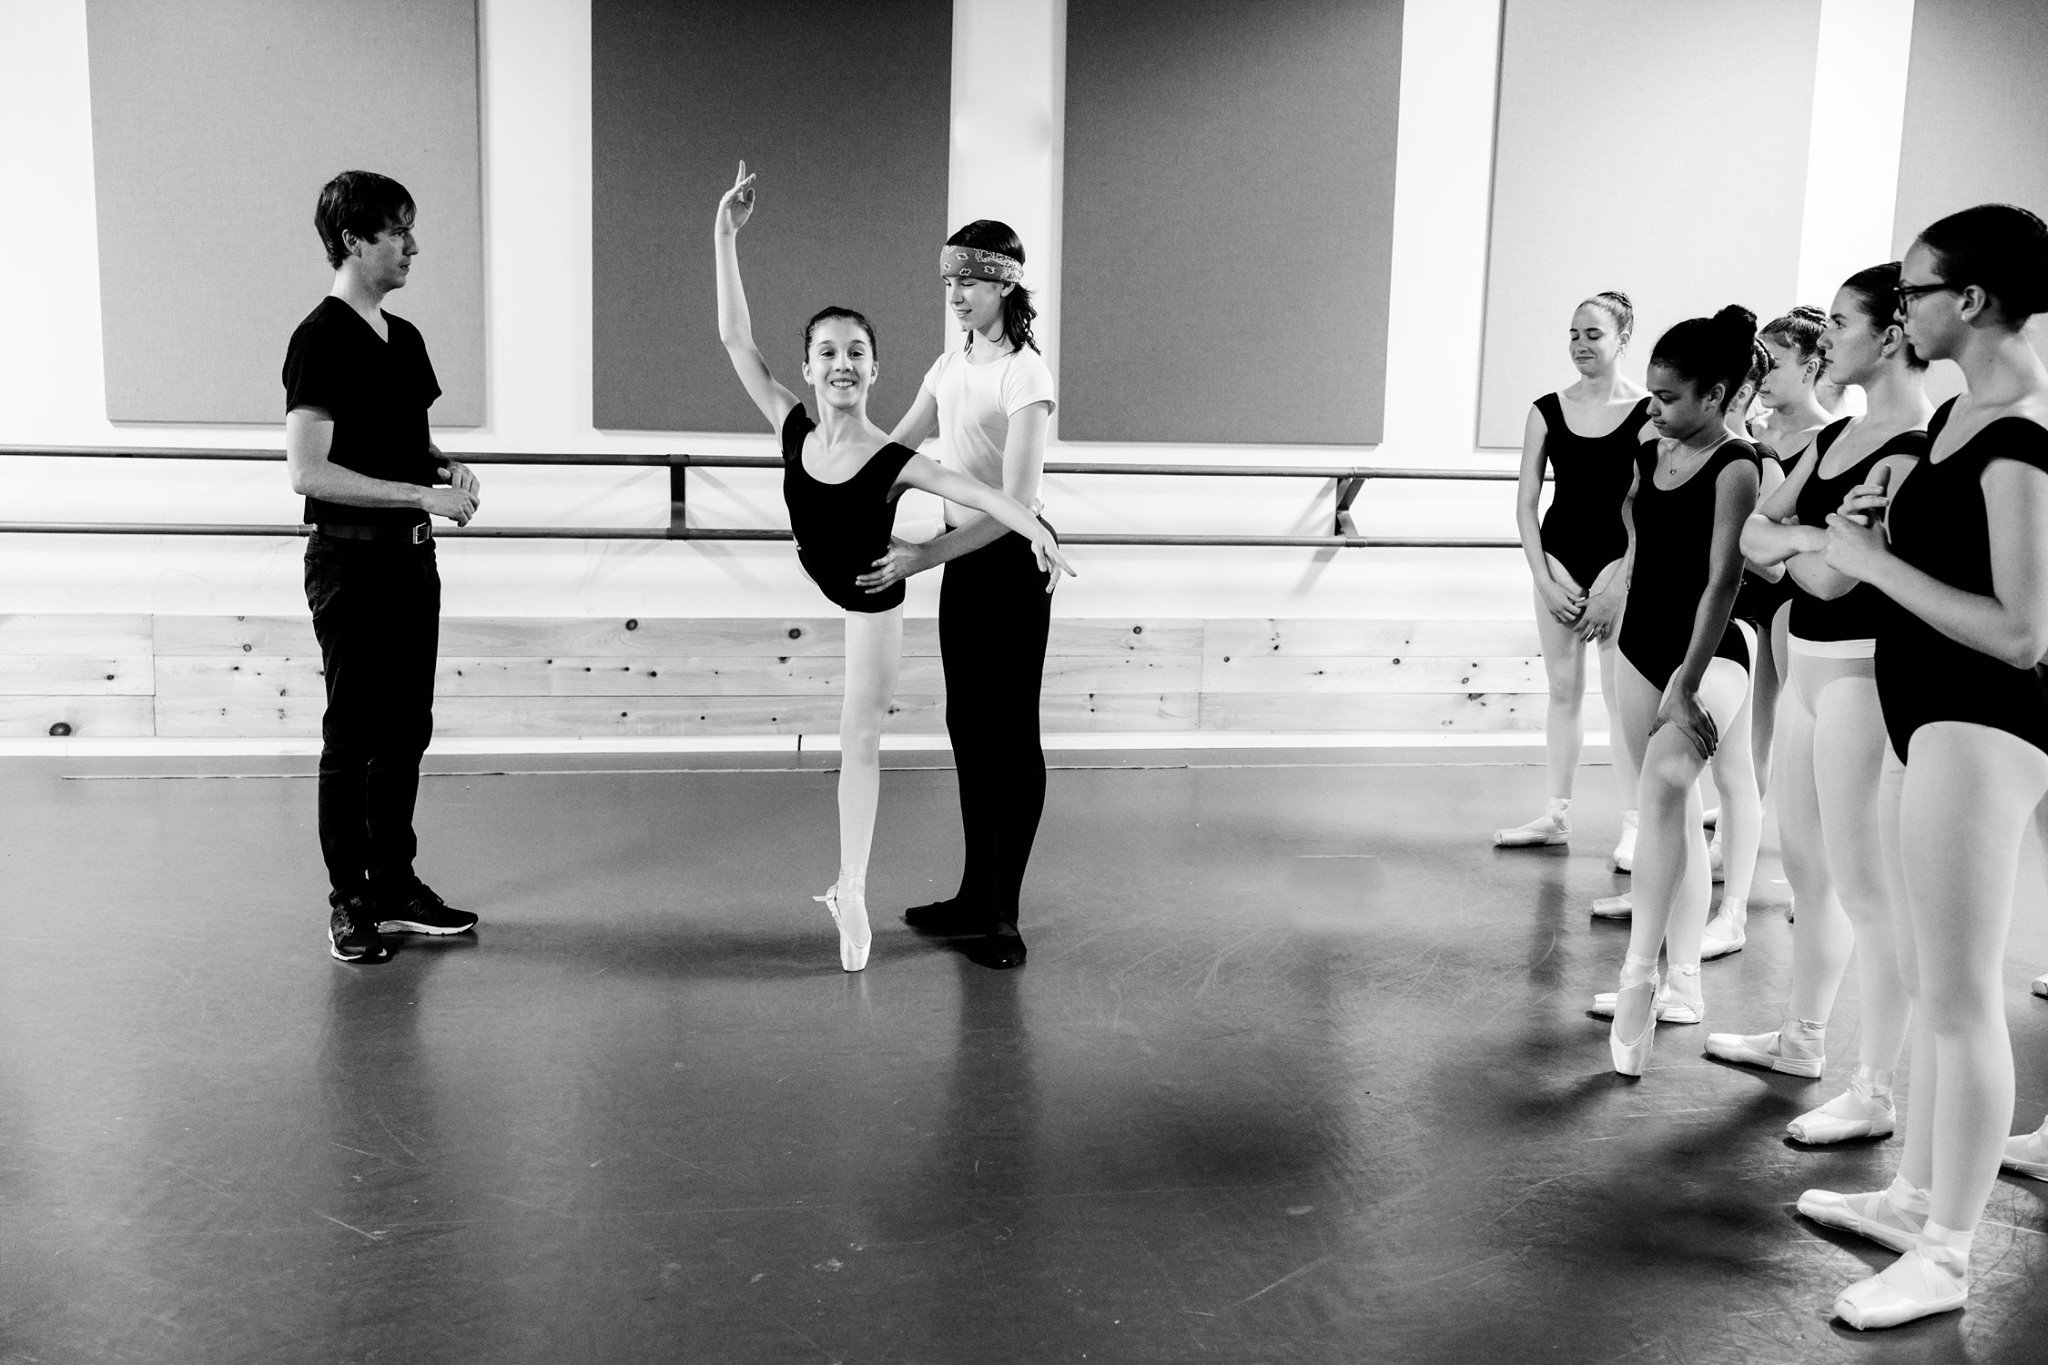 Photo by in house photographer Sori Gottdenker of Mr Mishoe correcting students in the dance studio during his Intermediate level Ballet Partnering class